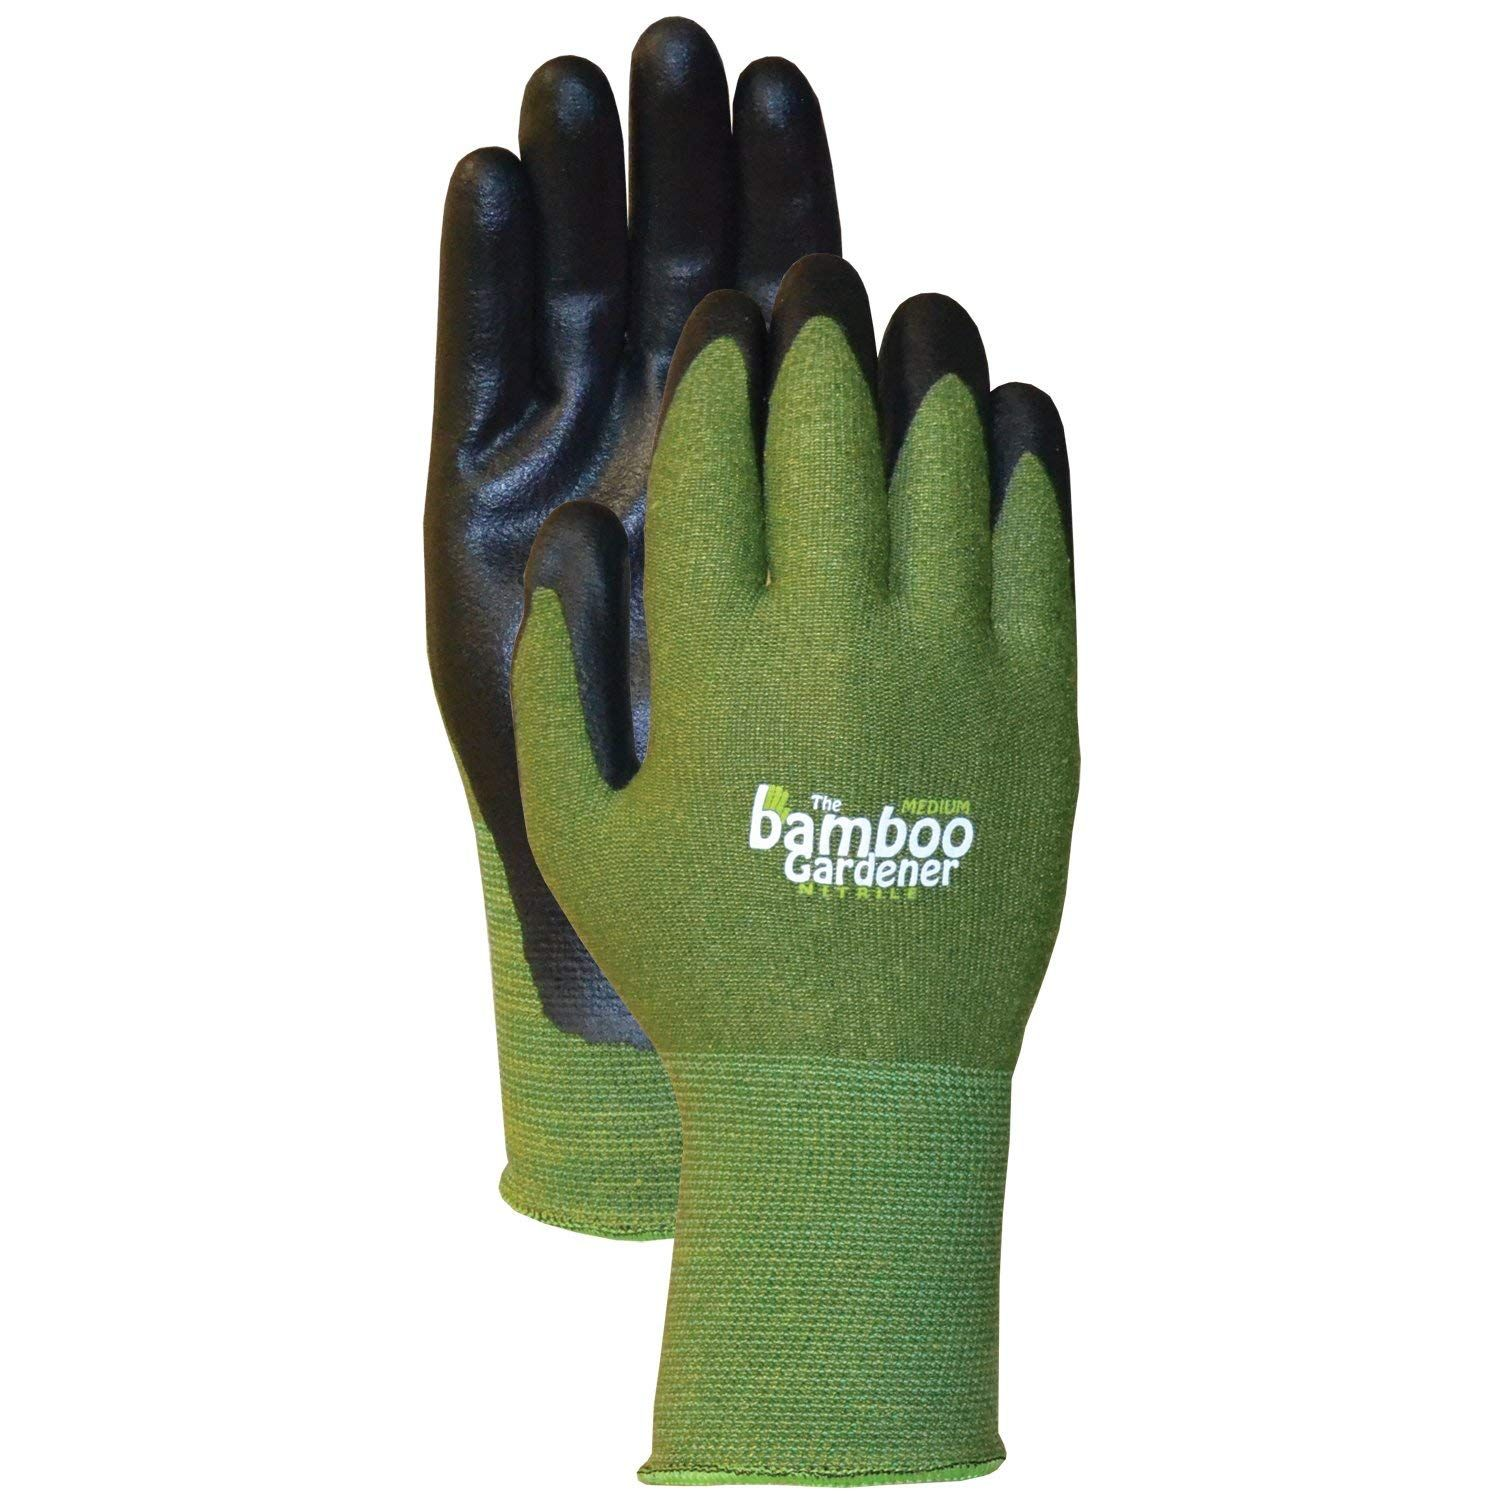 Gardening Gloves Rayon Fiber Washable Durable Nitrile Palm